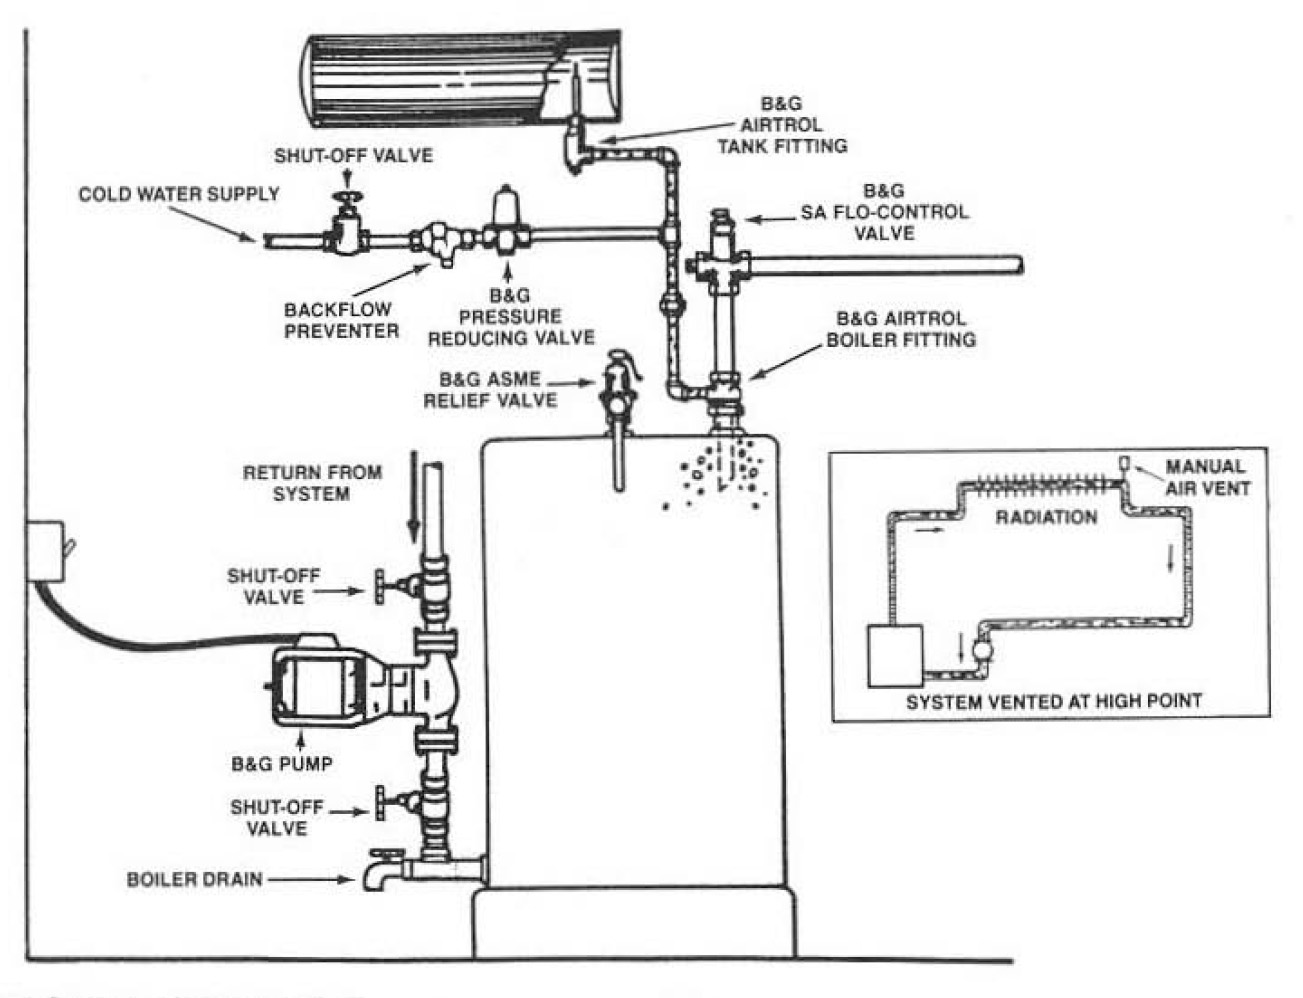 bell   gossett series 60 in line centrifugal pumps